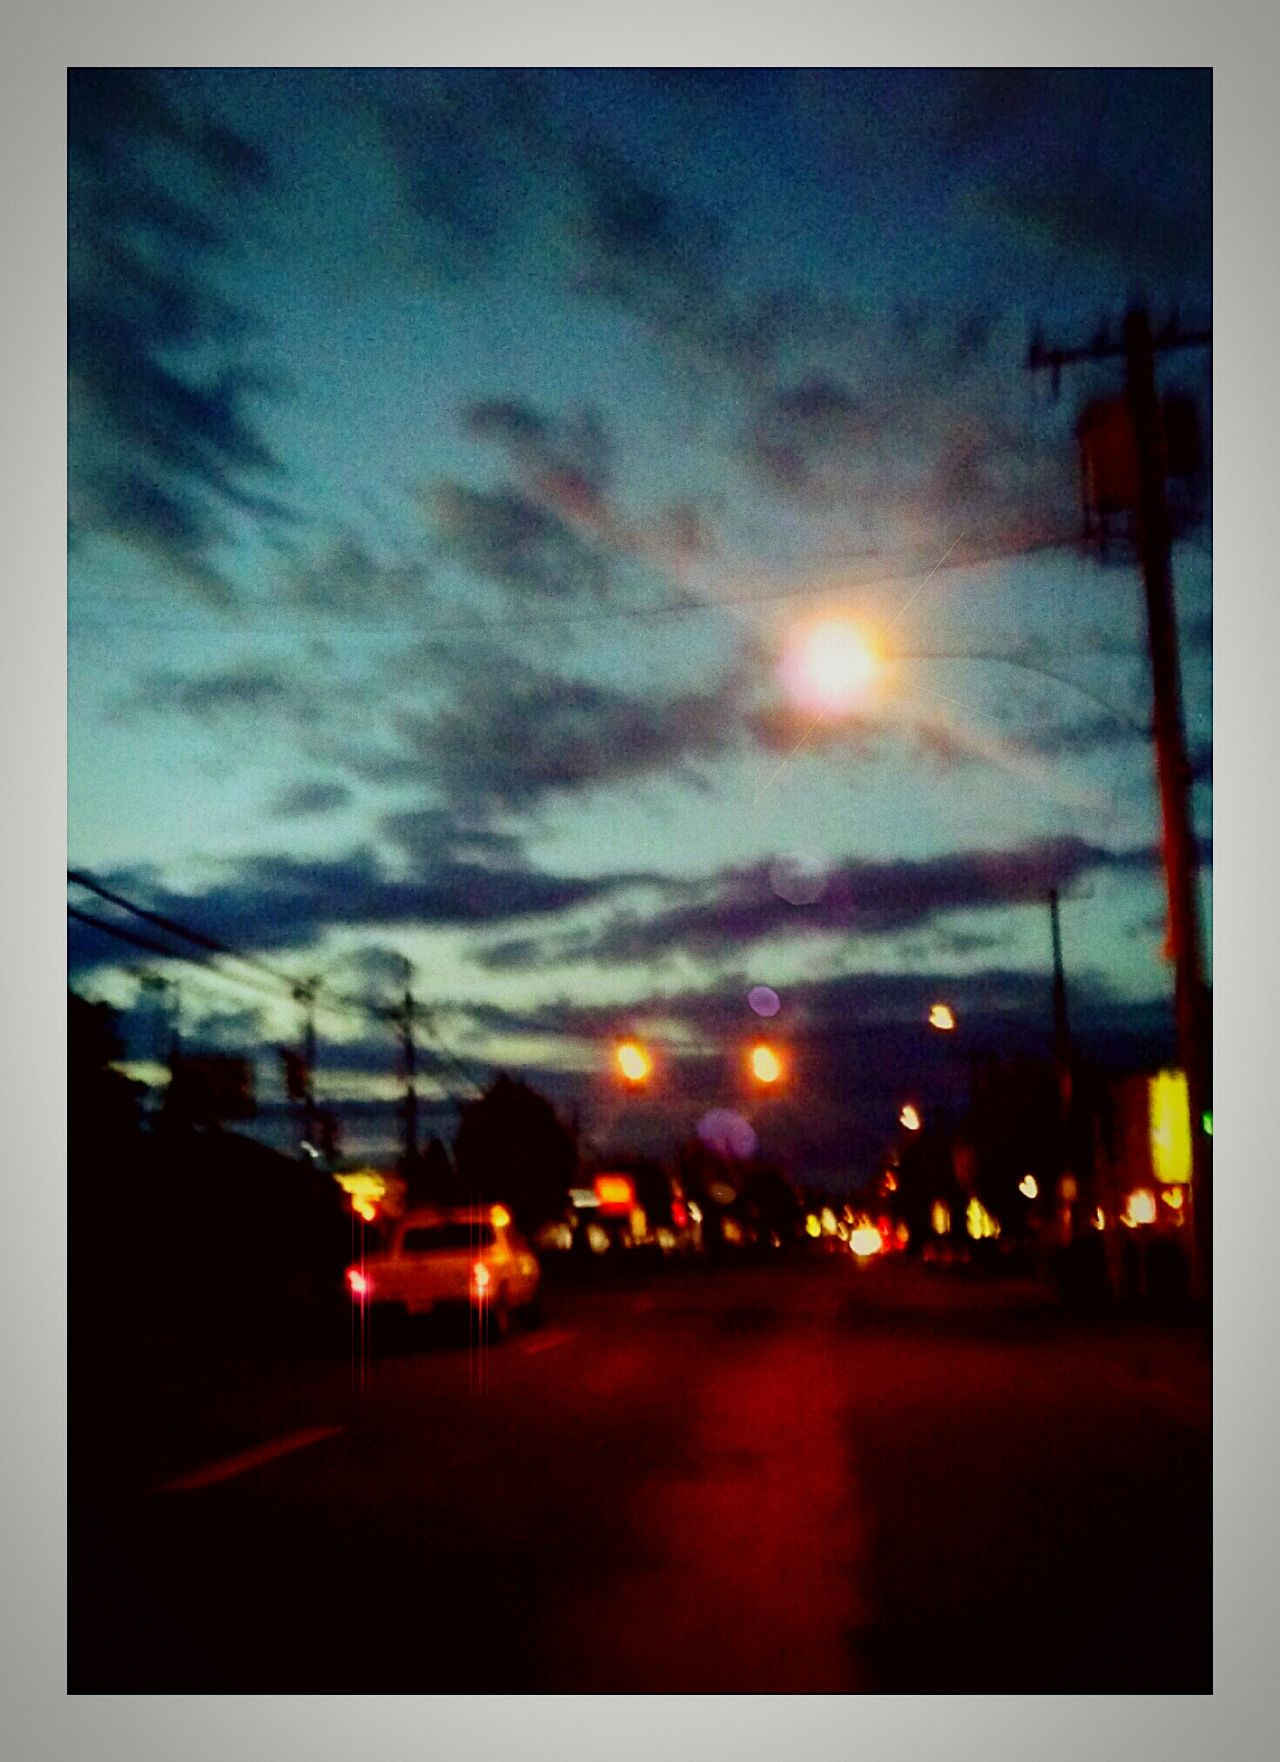 Storm Clouds Wather Collection Citystreets Small Town Life On The Way Adventure Club Drive Time Going To Market Traffic Car Lights Street Lights At The End Of The Day Beautyineverything Drivebyphotography Twilight Storms A Brewin! Fine Art Photography Oregonexplored Dramatic Sky Spectacular My Art, My Soul... This Week On Eyeem Gorgeous ♥ Lovelovelove The Street Photographer - 2016 EyeEm Awards